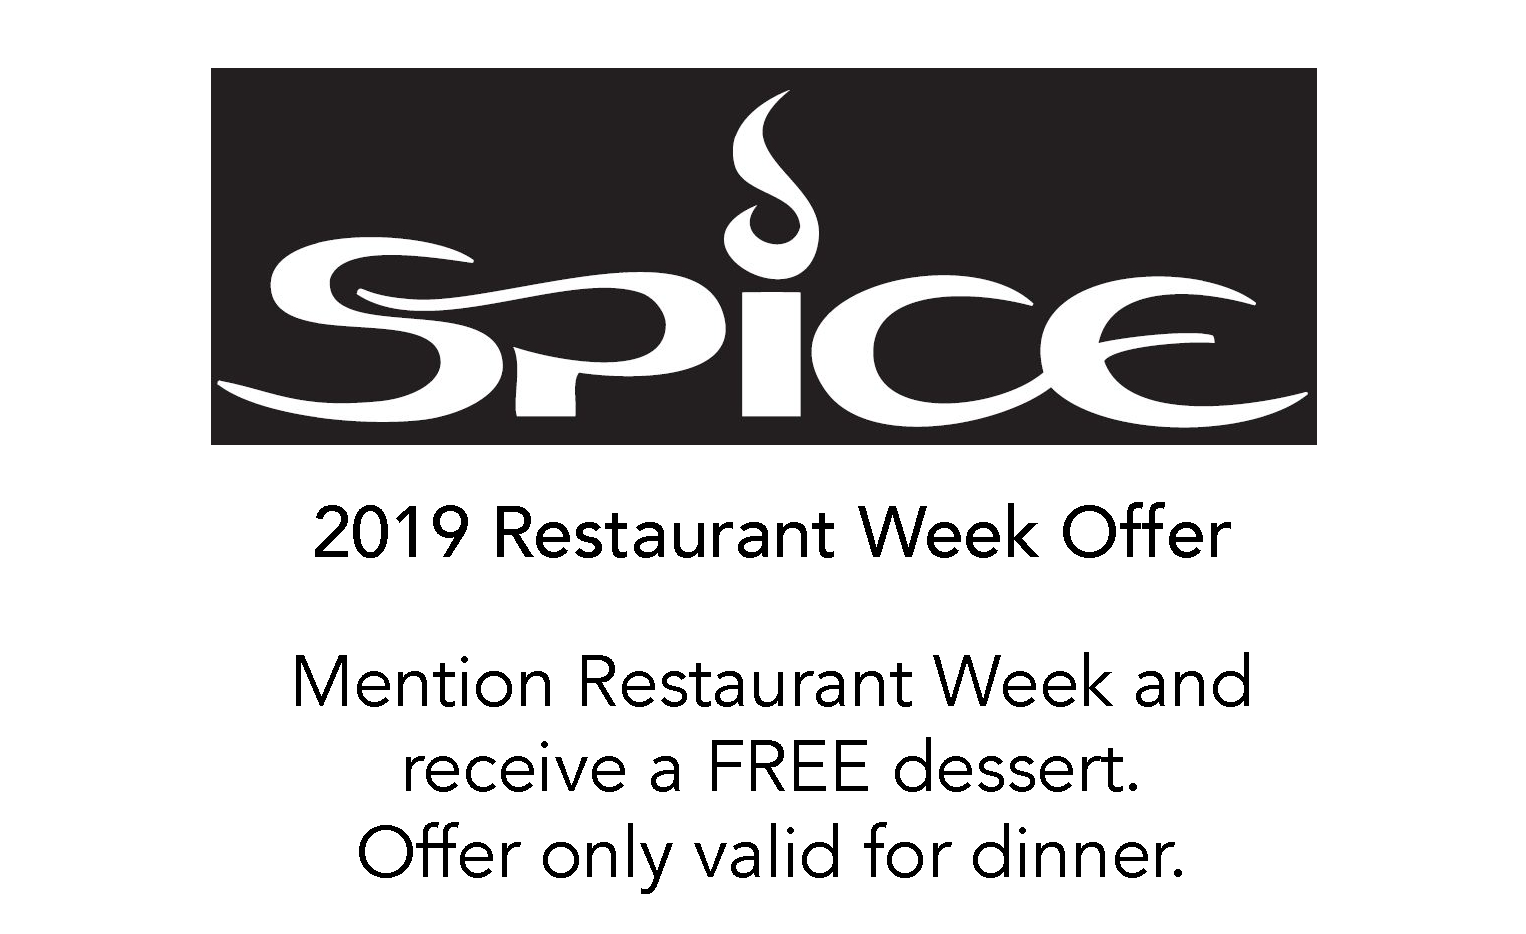 Spice Offer